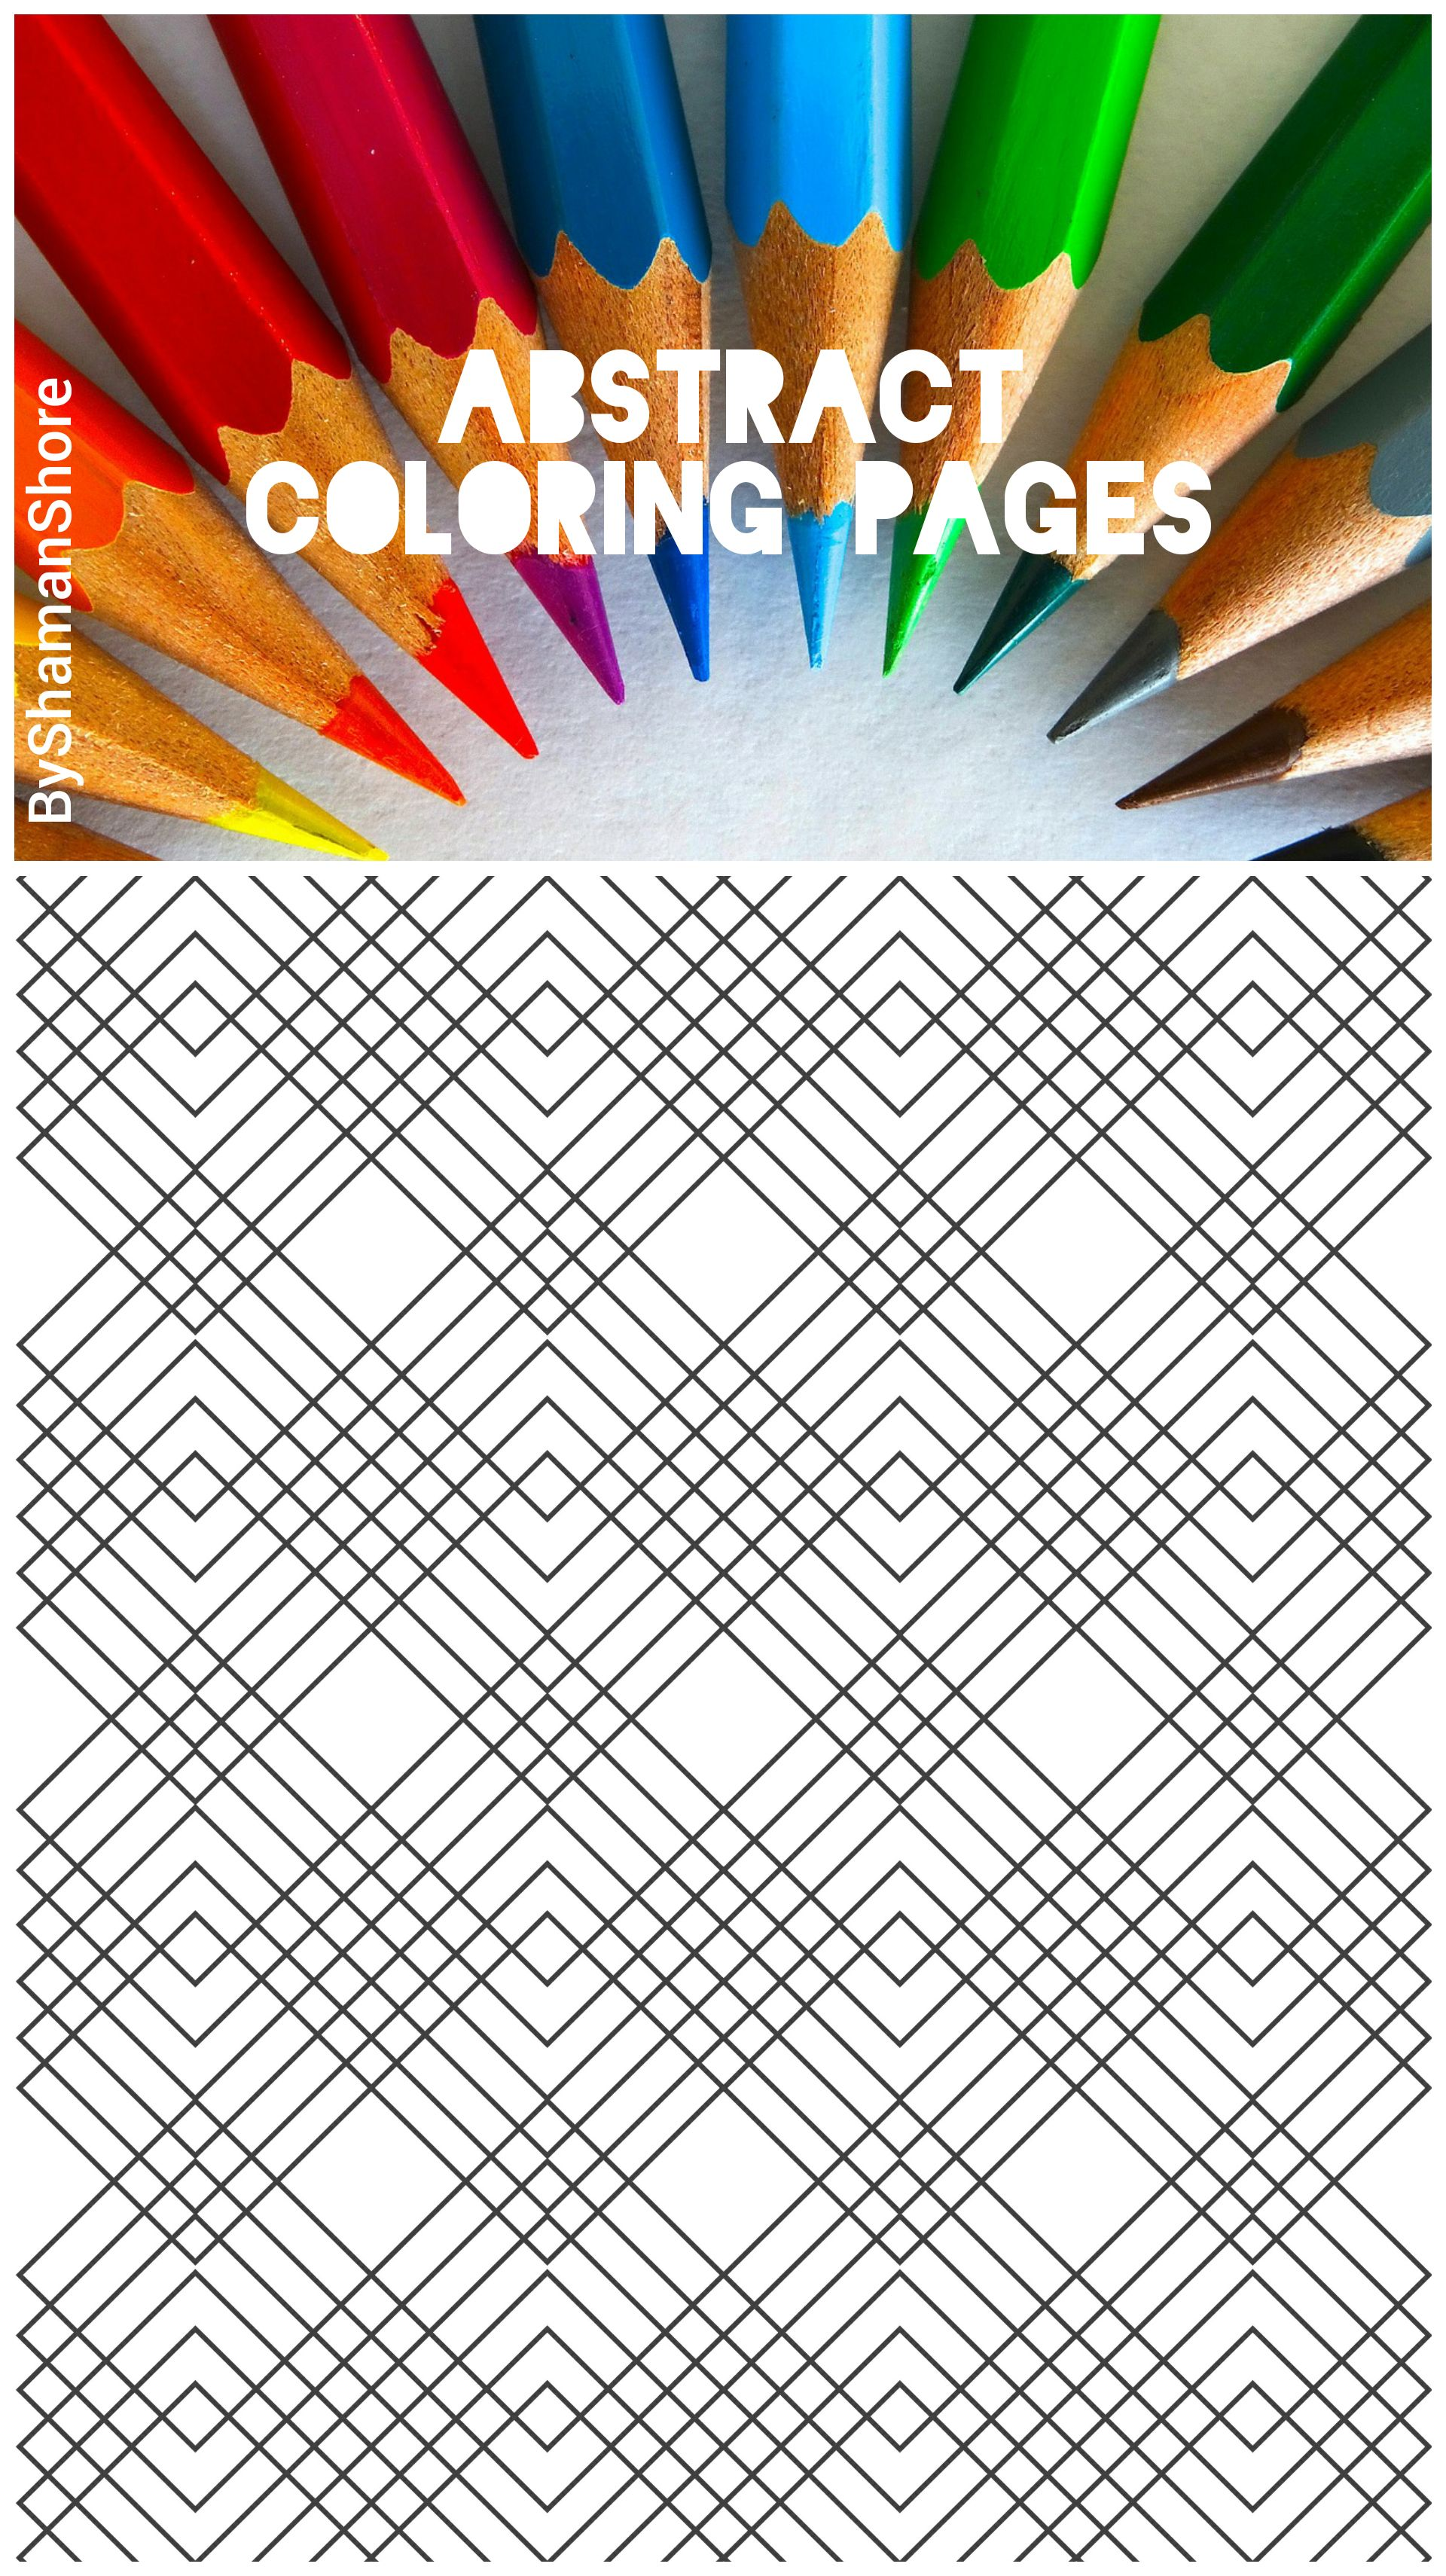 Abstract coloring pages for grown ups printable adult coloring pages digital adult coloring book on etsy abstract geometric coloring pages pdf